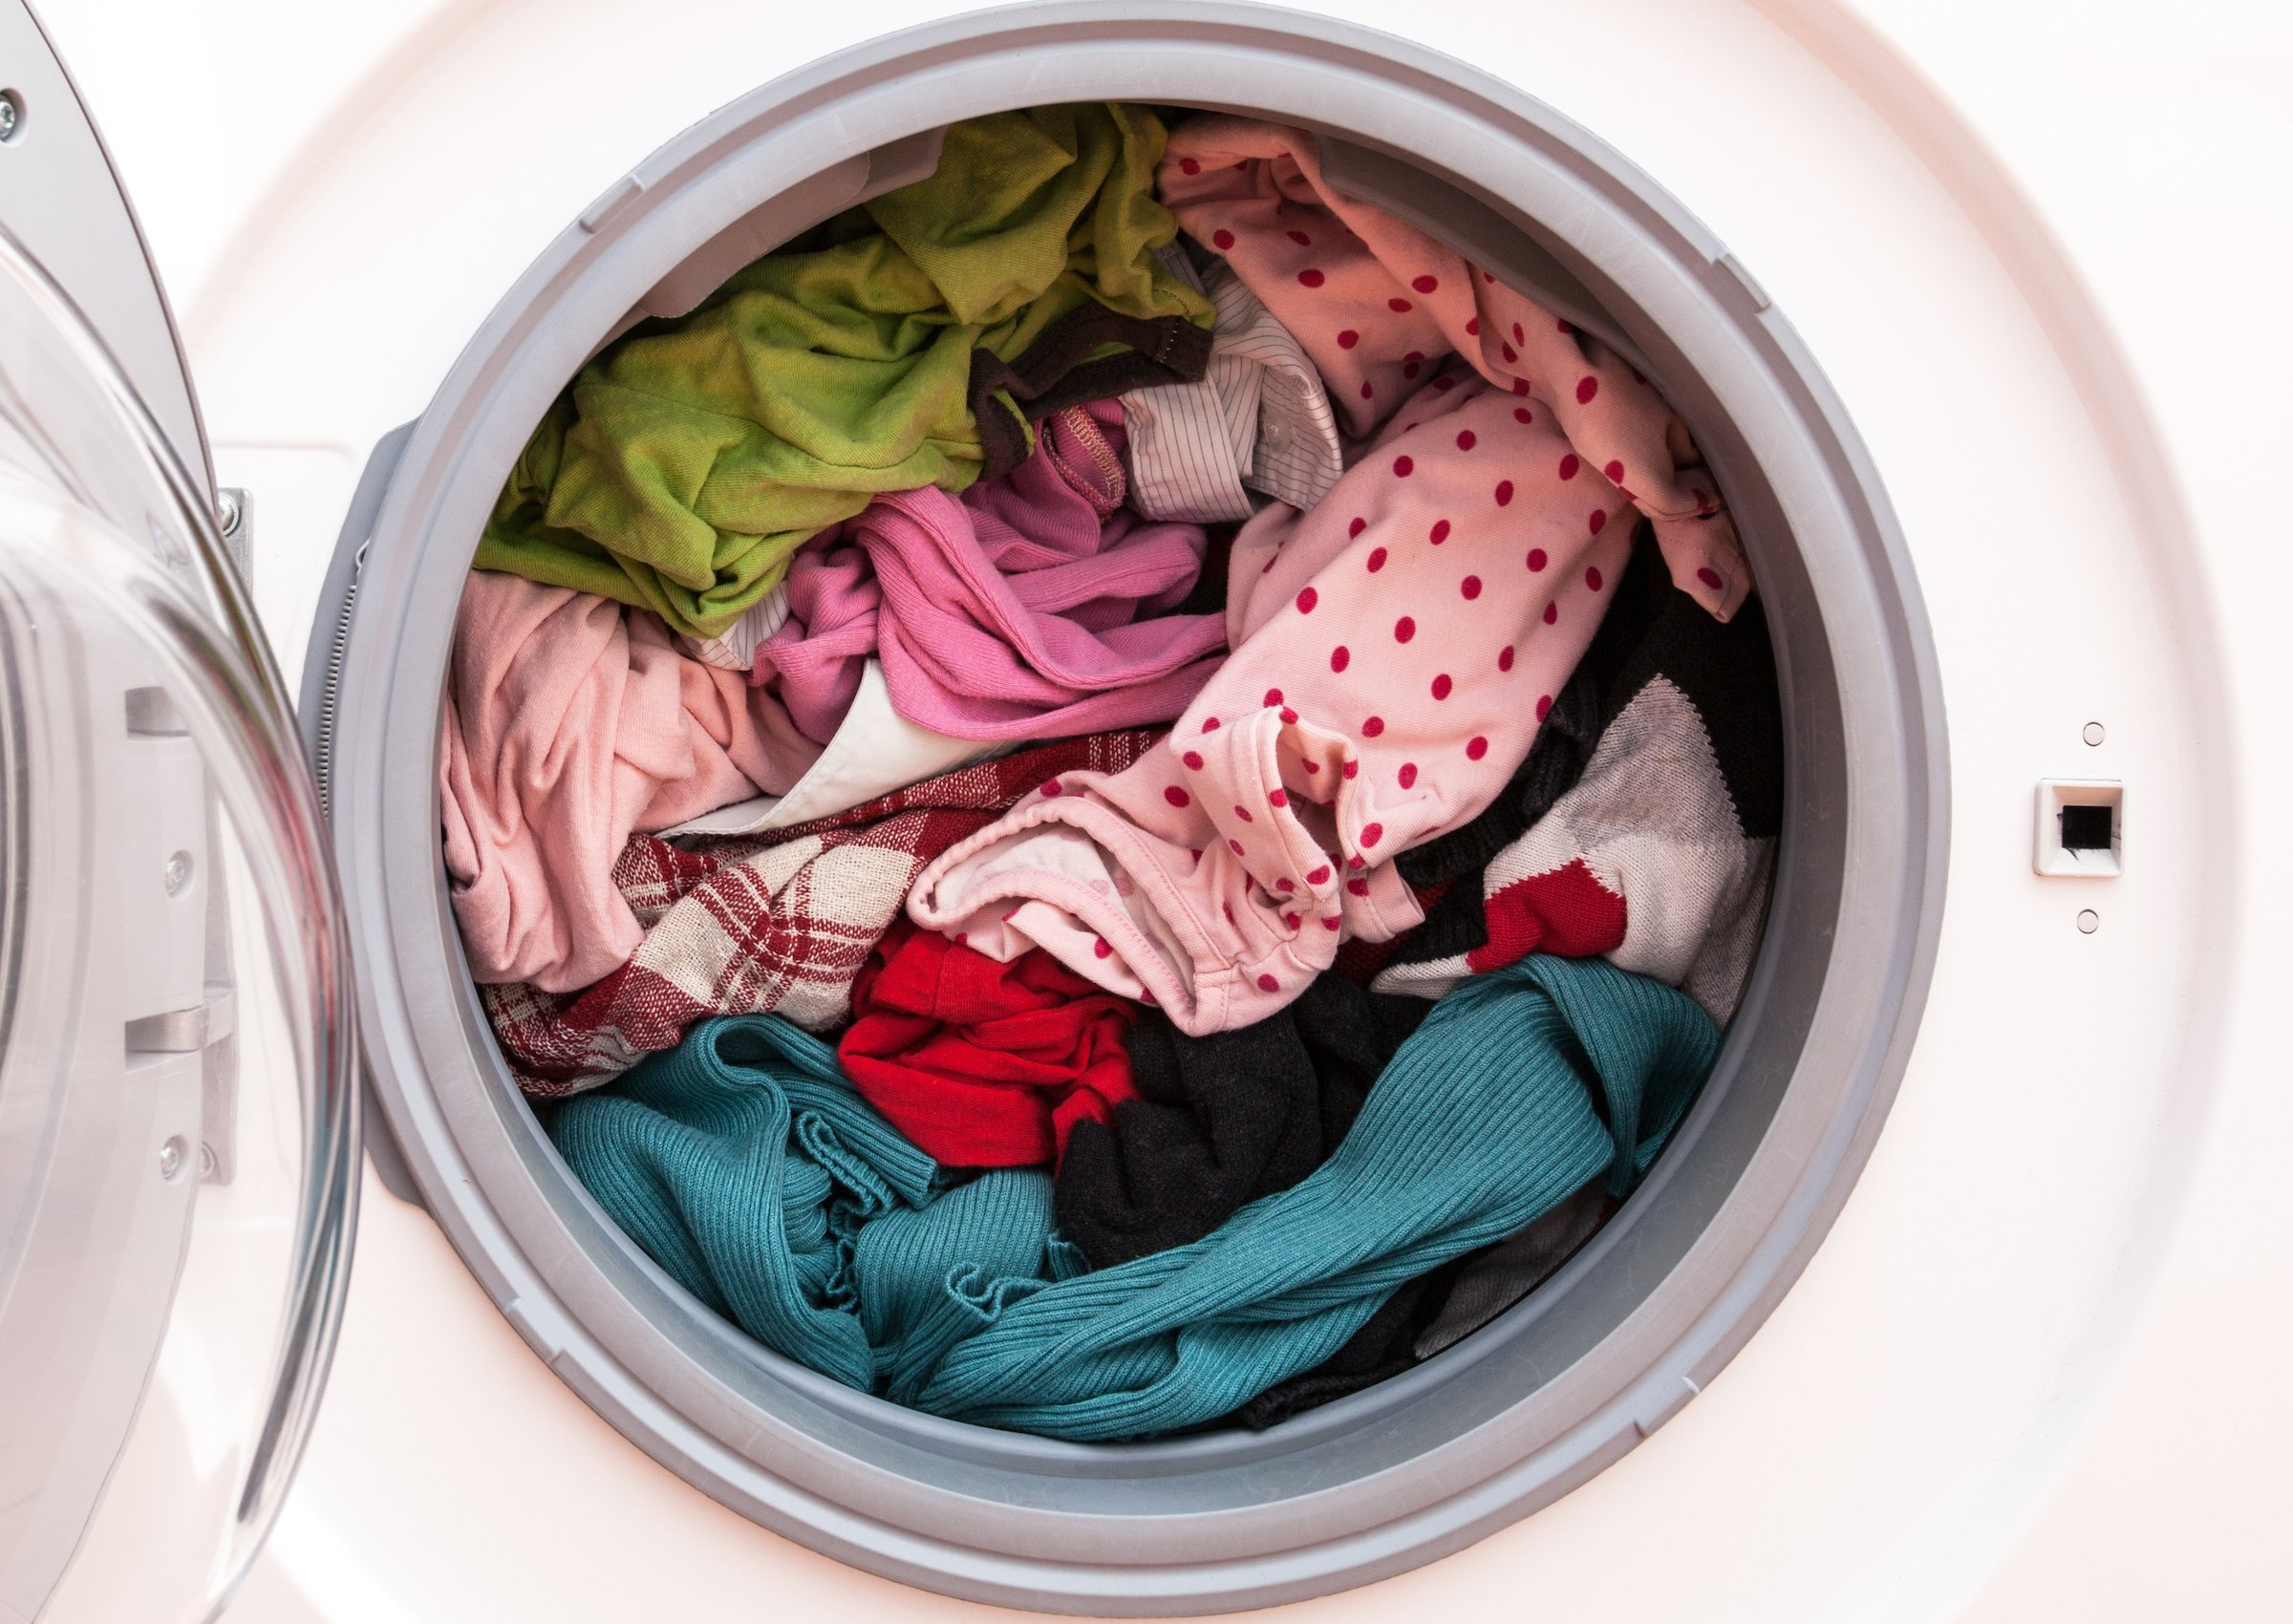 If your washing machine is overflowing, you'll need to determine what's causing the problem.